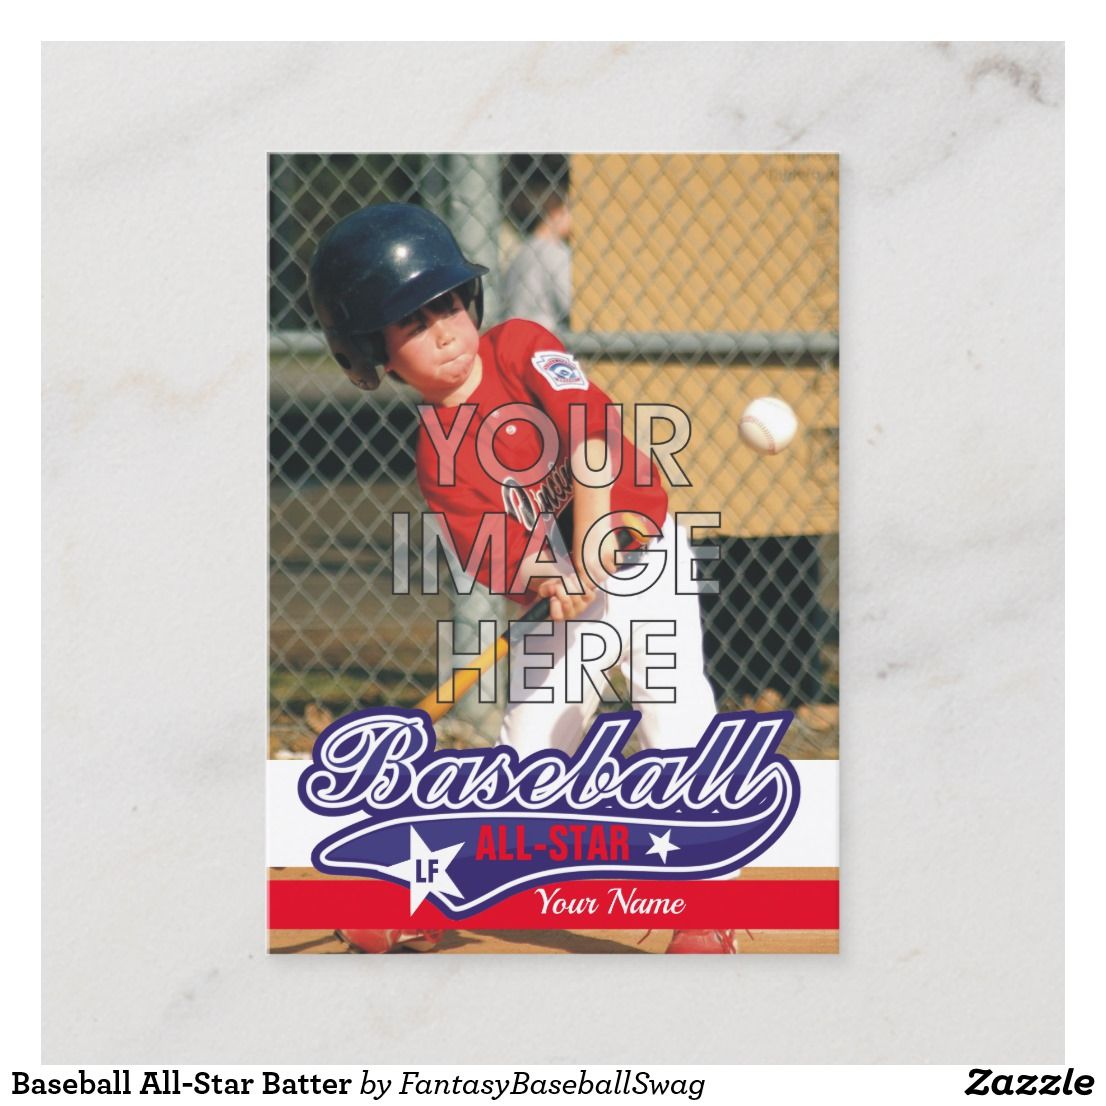 Baseball All Star Batter Custom Trading Cards Www Fansportsspot Com Baseball Card Displays Baseball Card Template Baseball Cards Storage